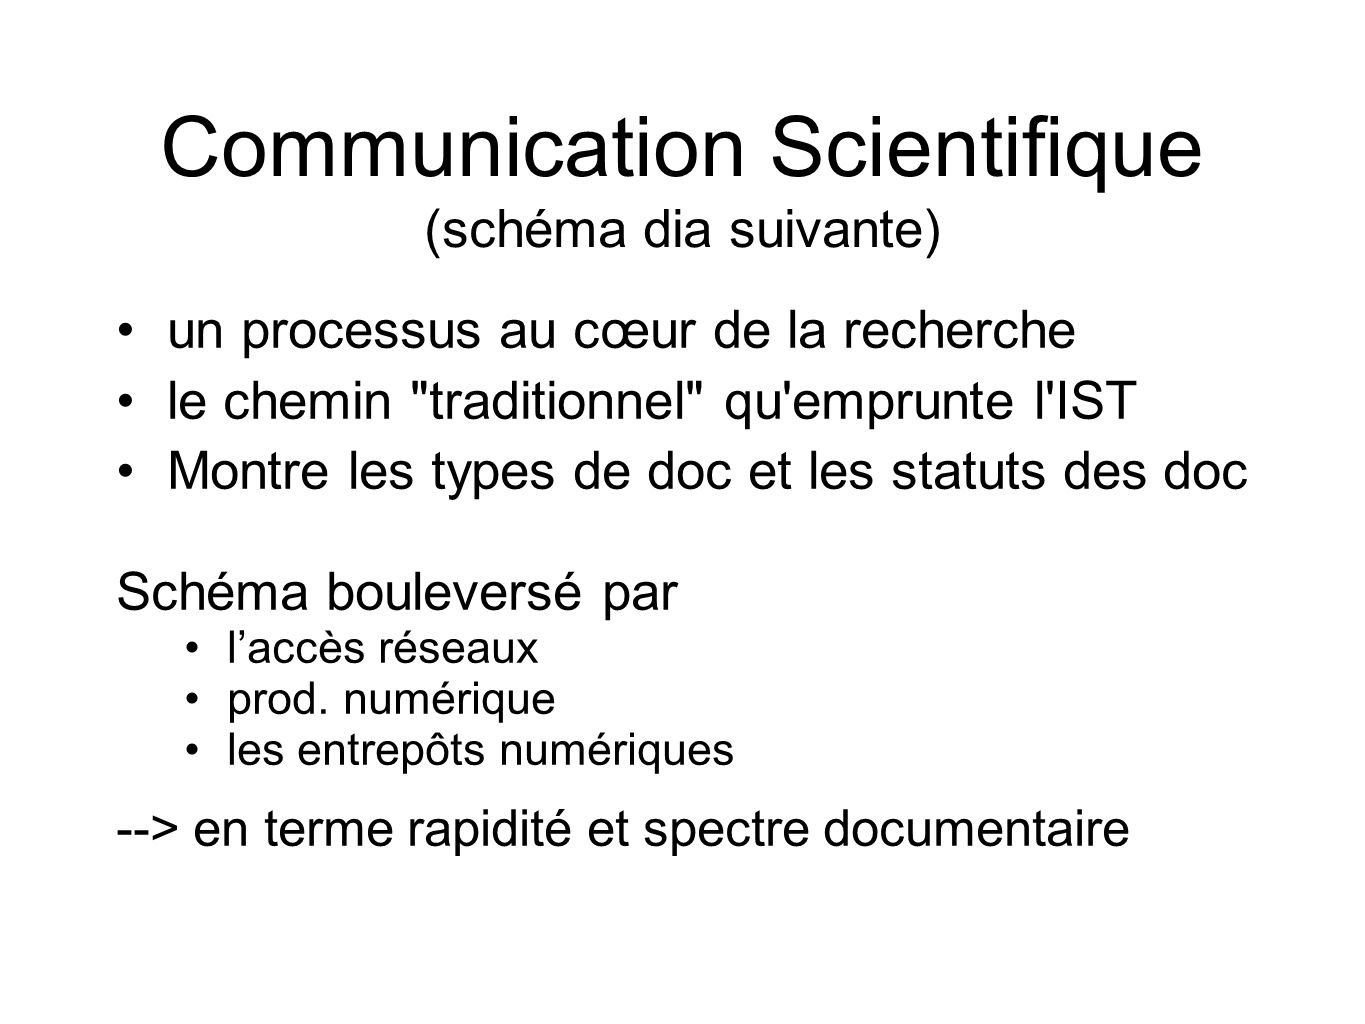 Communication Scientifique (schéma dia suivante)